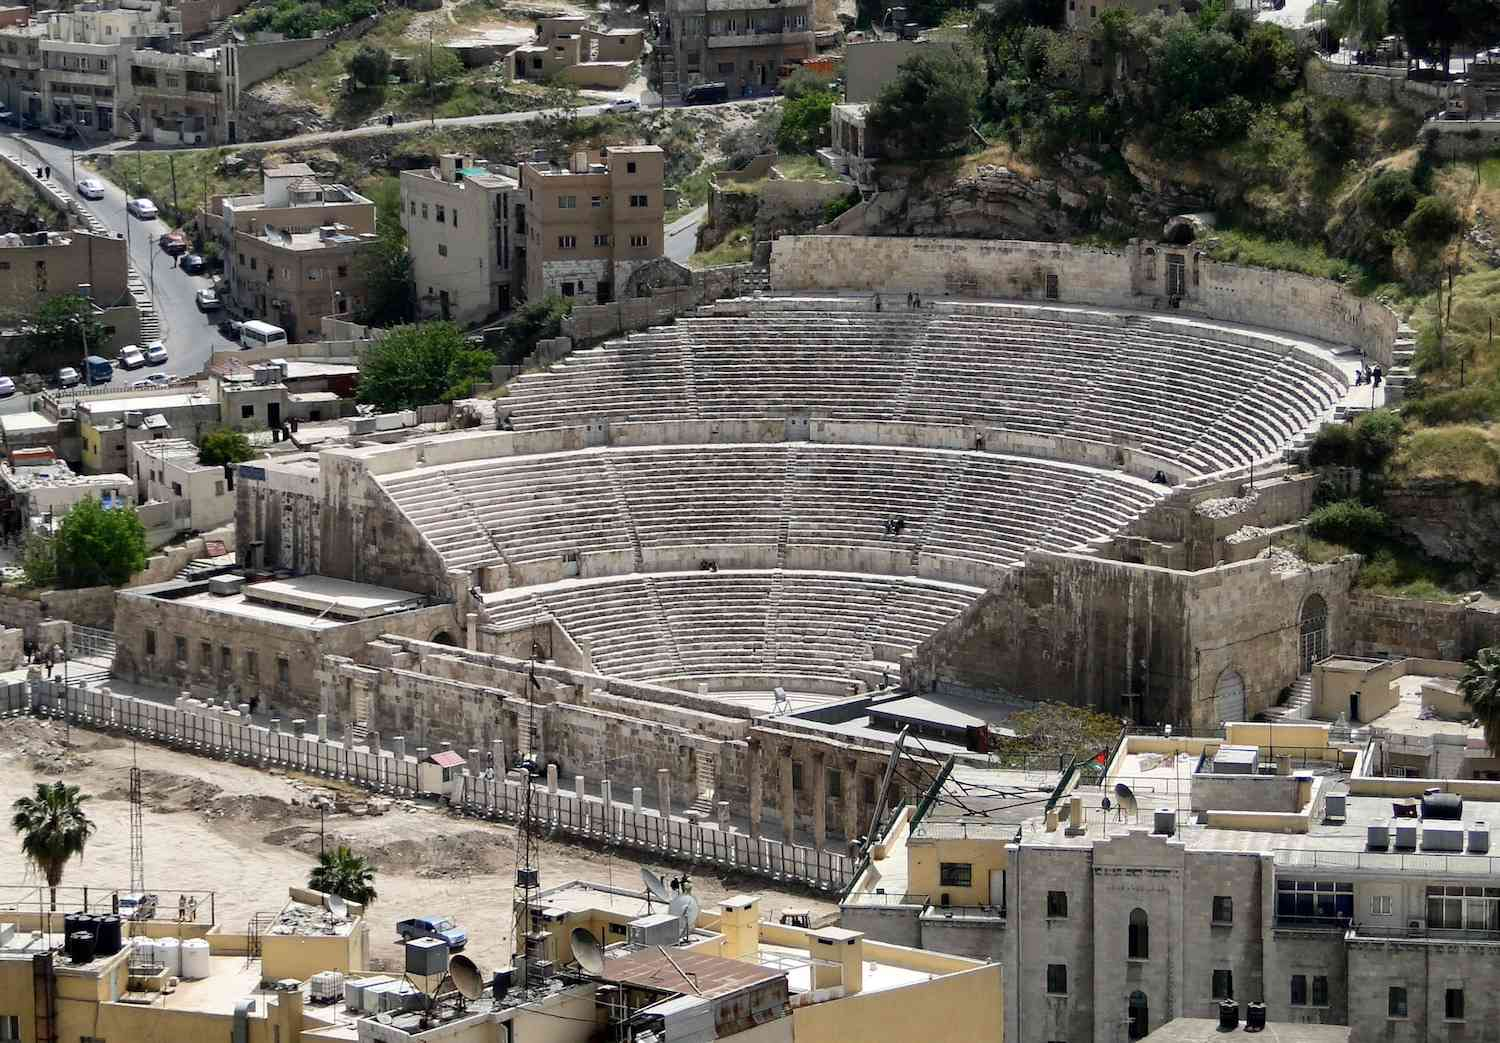 The Roman Theater in Amman, Jordan surrounded by modern streets and buildings